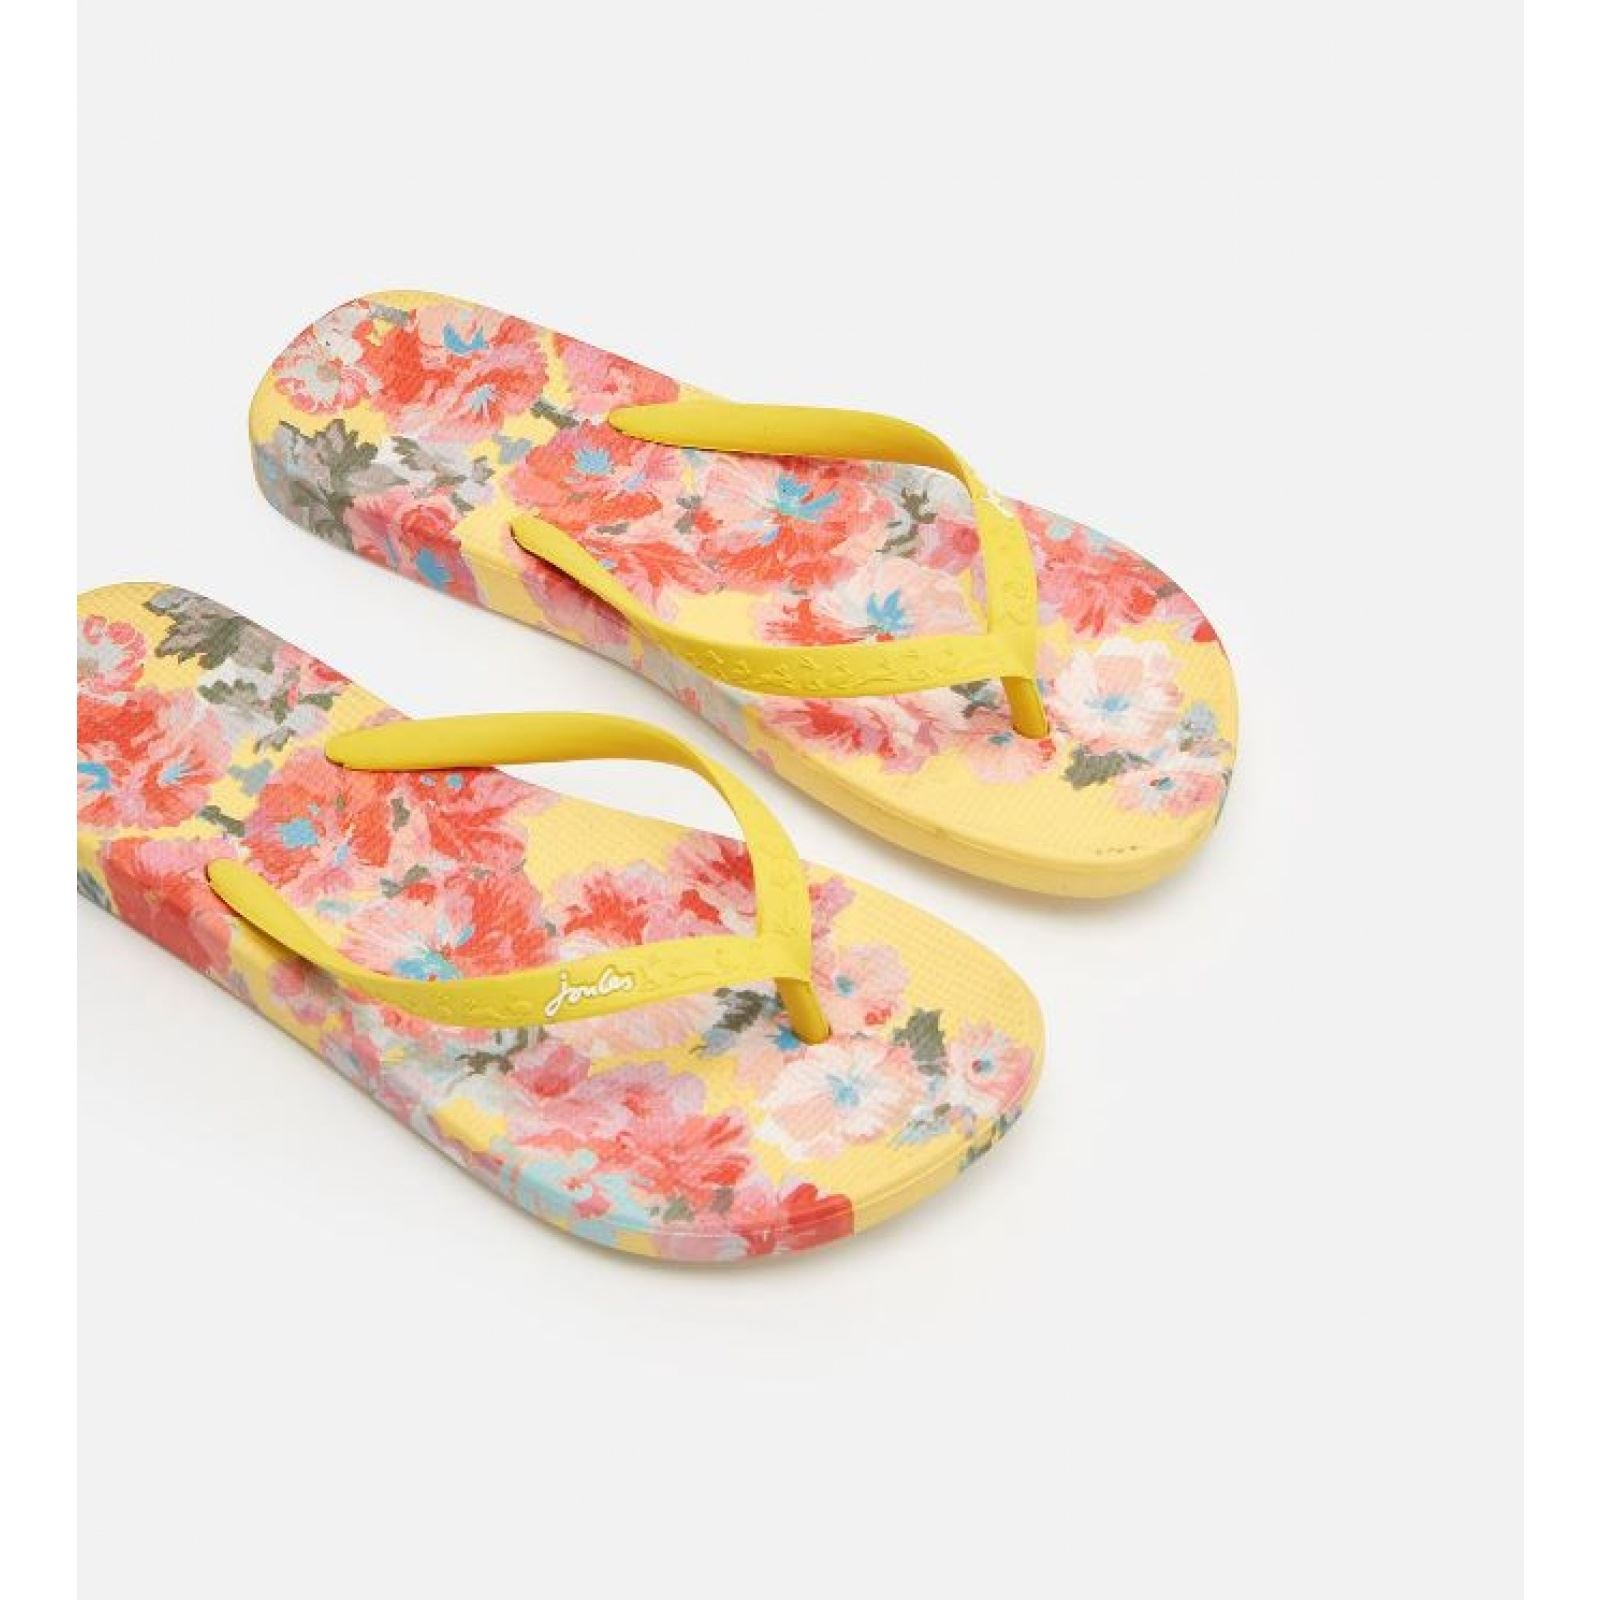 Joules-Flip-Flops-Sandals-Summer-Flip-Flop-NEW-2019-COLOURS thumbnail 16